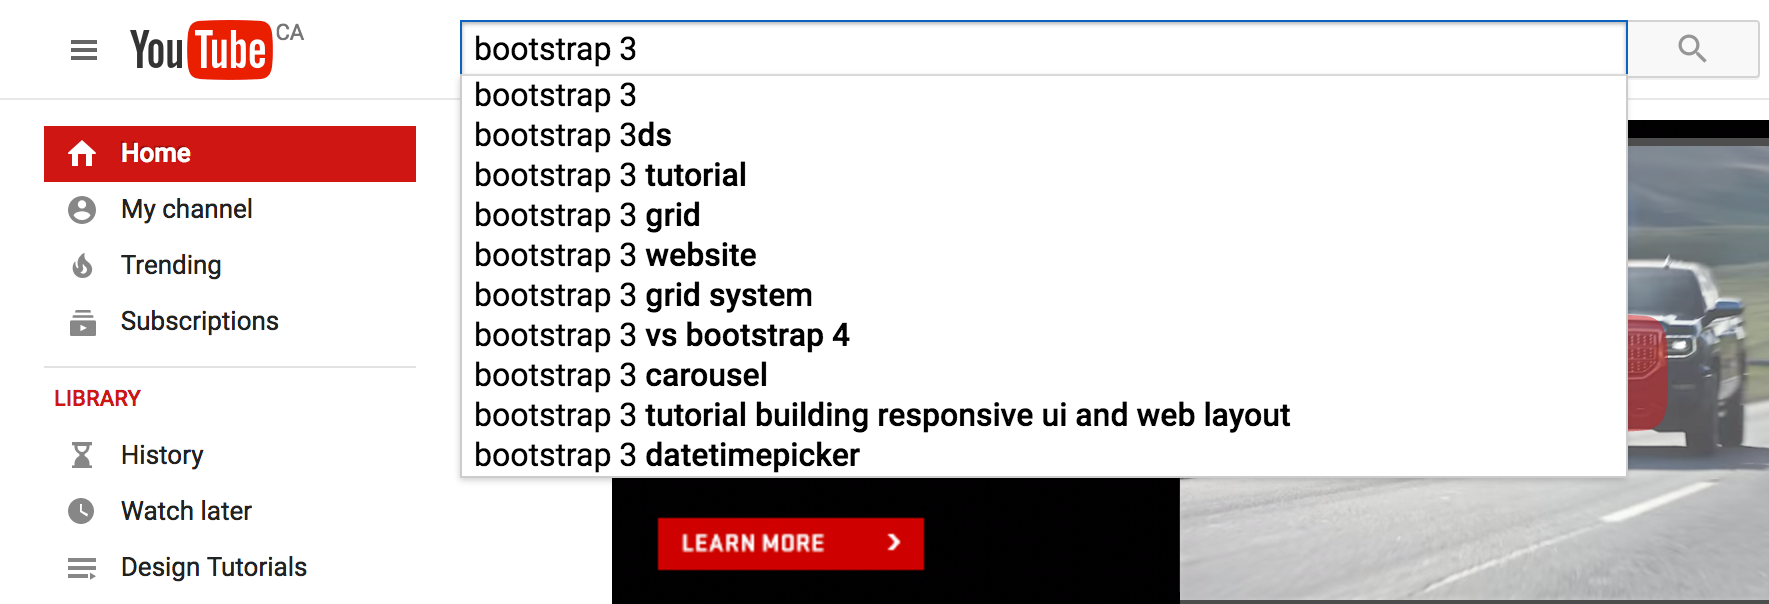 YouTube search for bootstrap 3